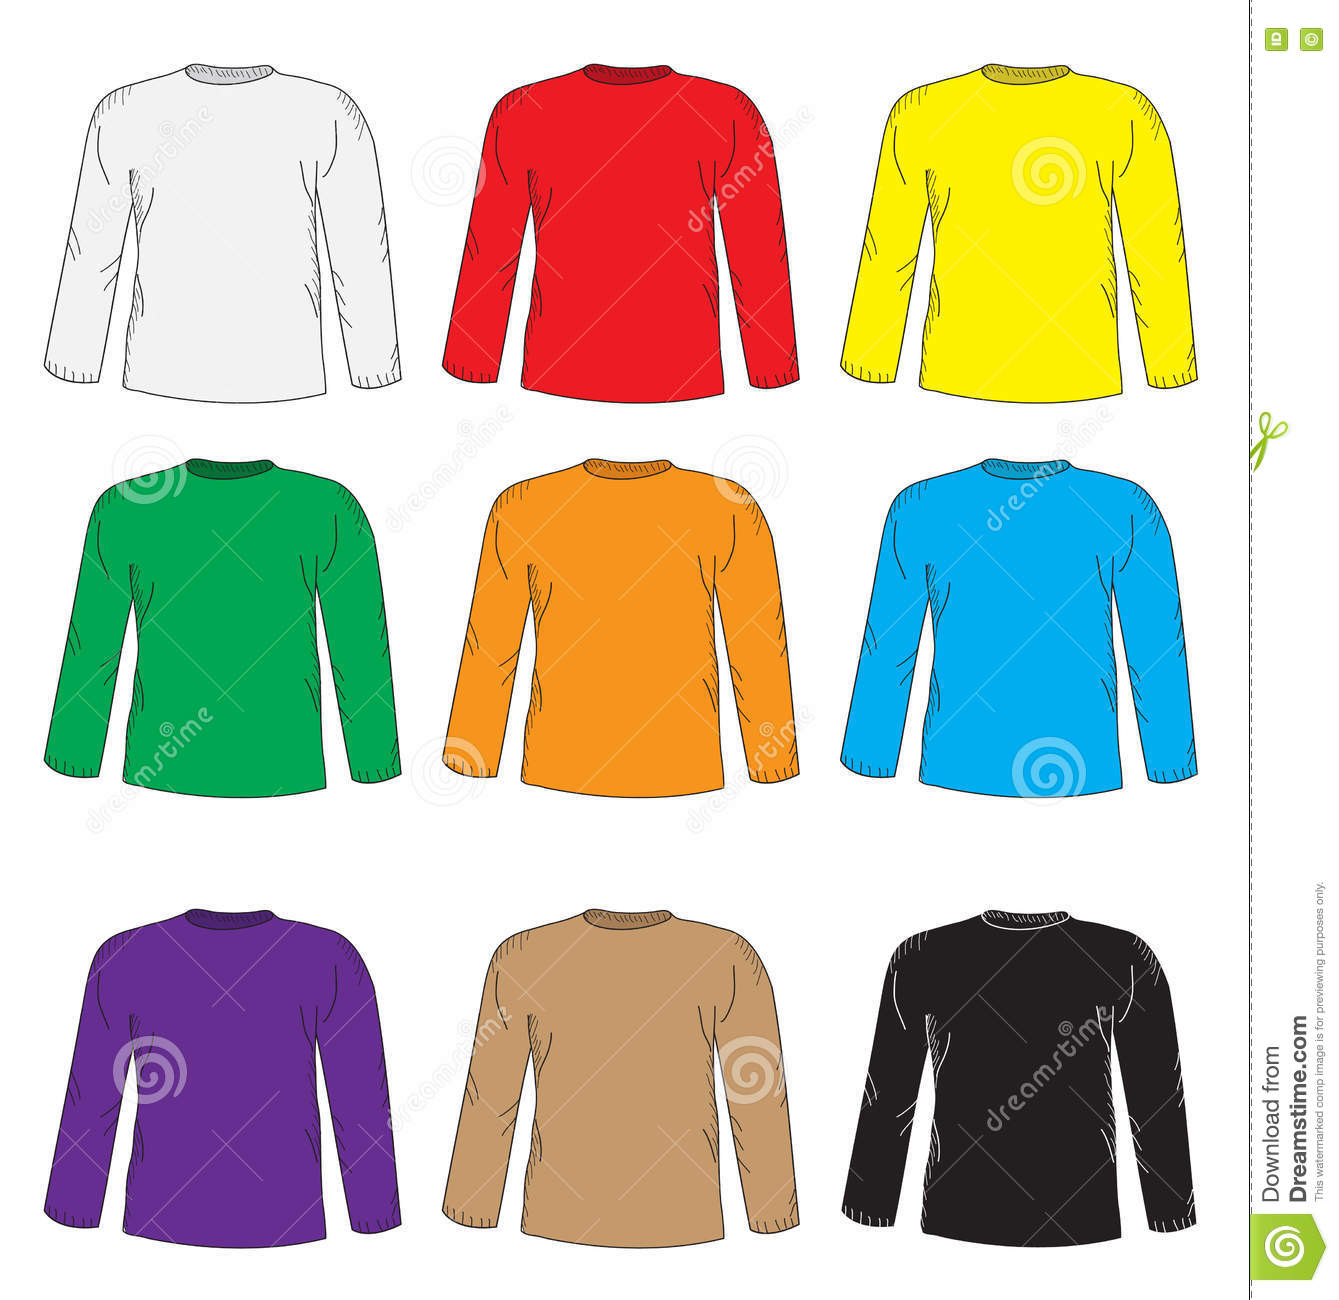 Design t shirt long sleeve - Colored Design Drawing Hand Illustration Long Mockup Multi Shirts Sleeves